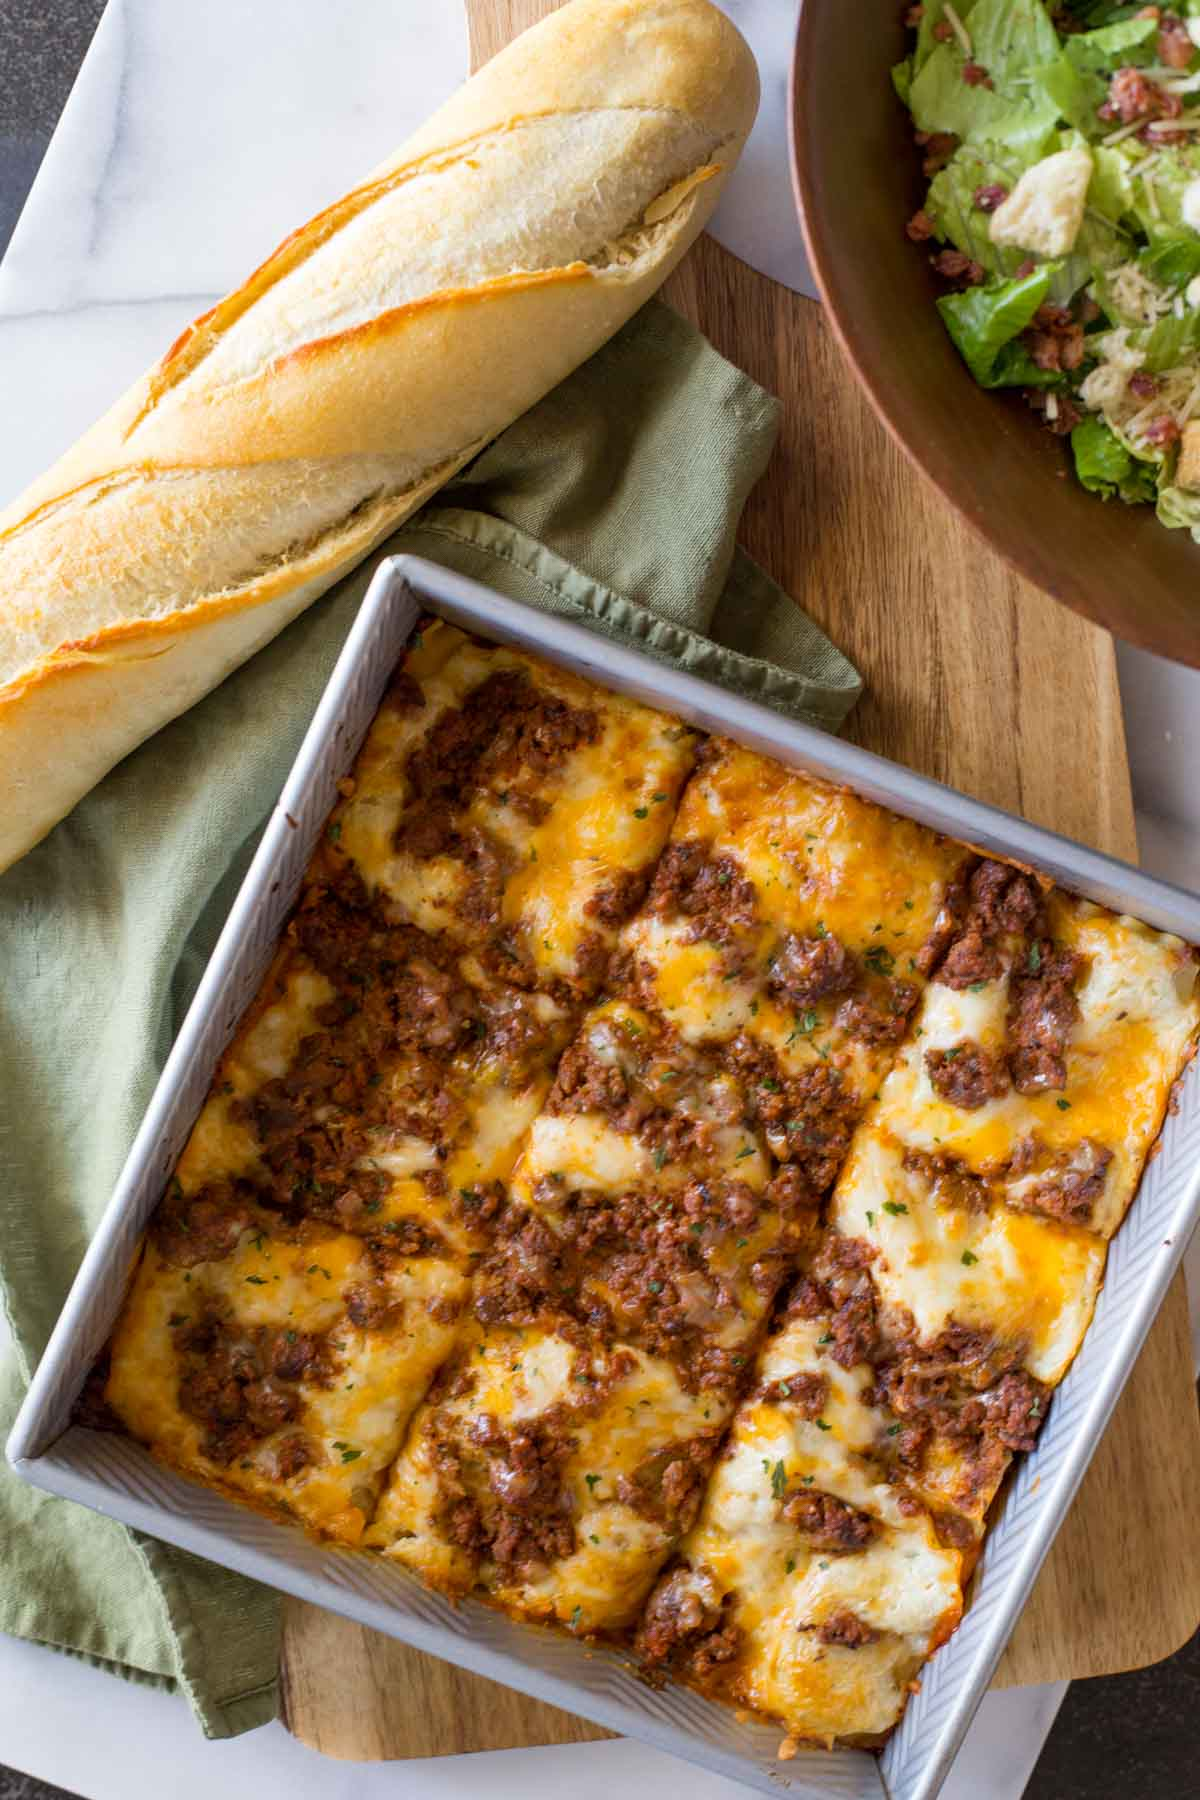 Simple Homemade Lasagna in a square baking dish, with a loaf of French bread and a bowl of salad next to it.